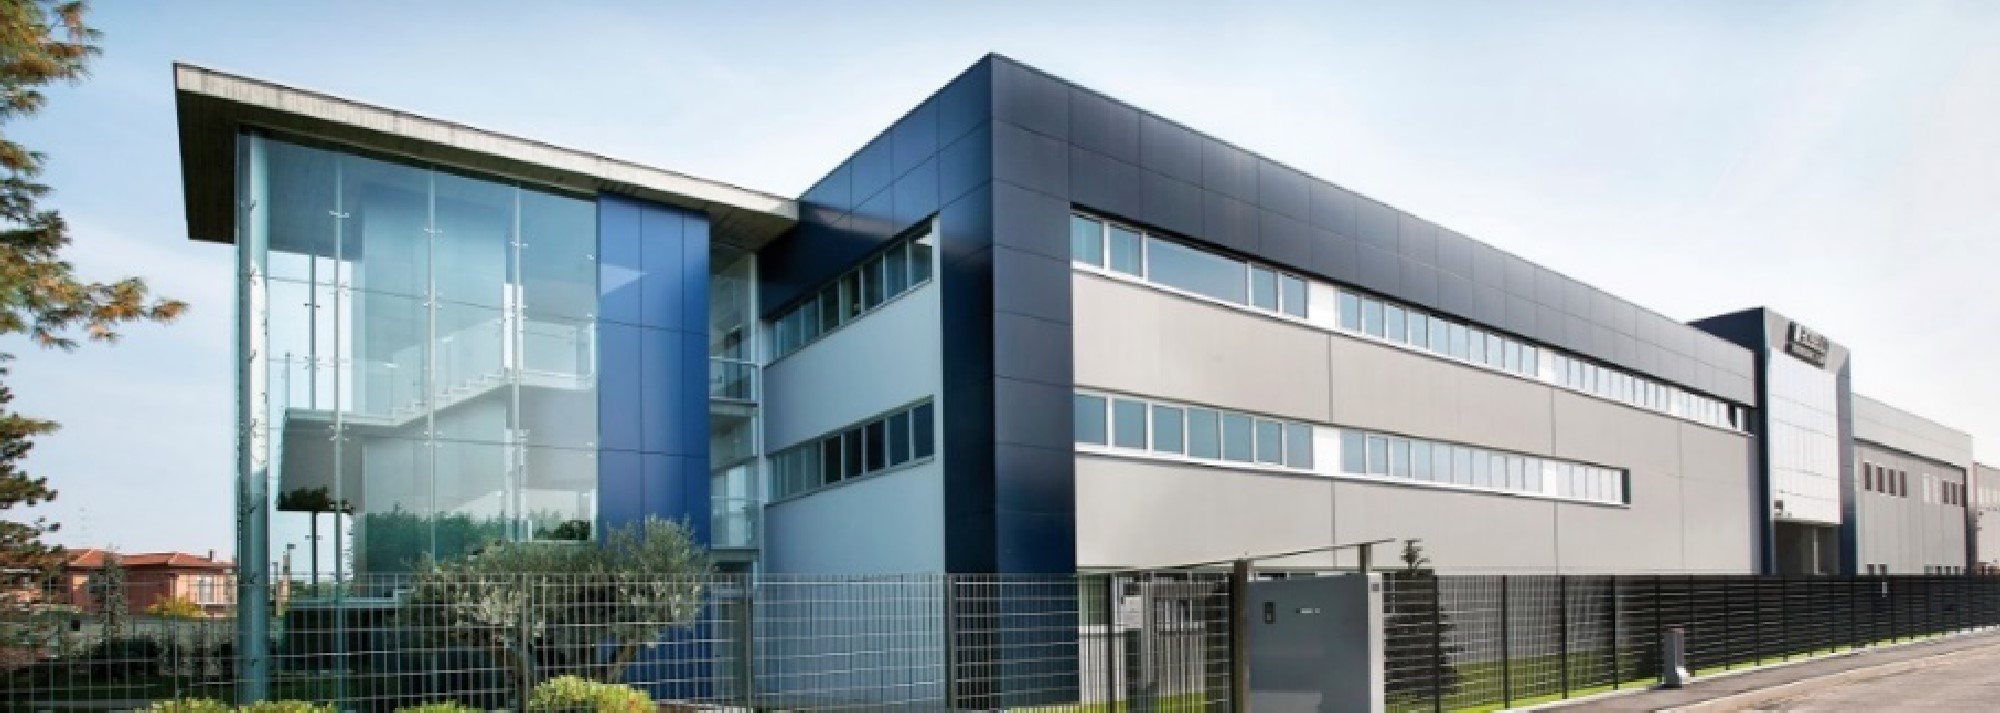 Bosello High Technology devient Carl Zeiss X-ray Technologies